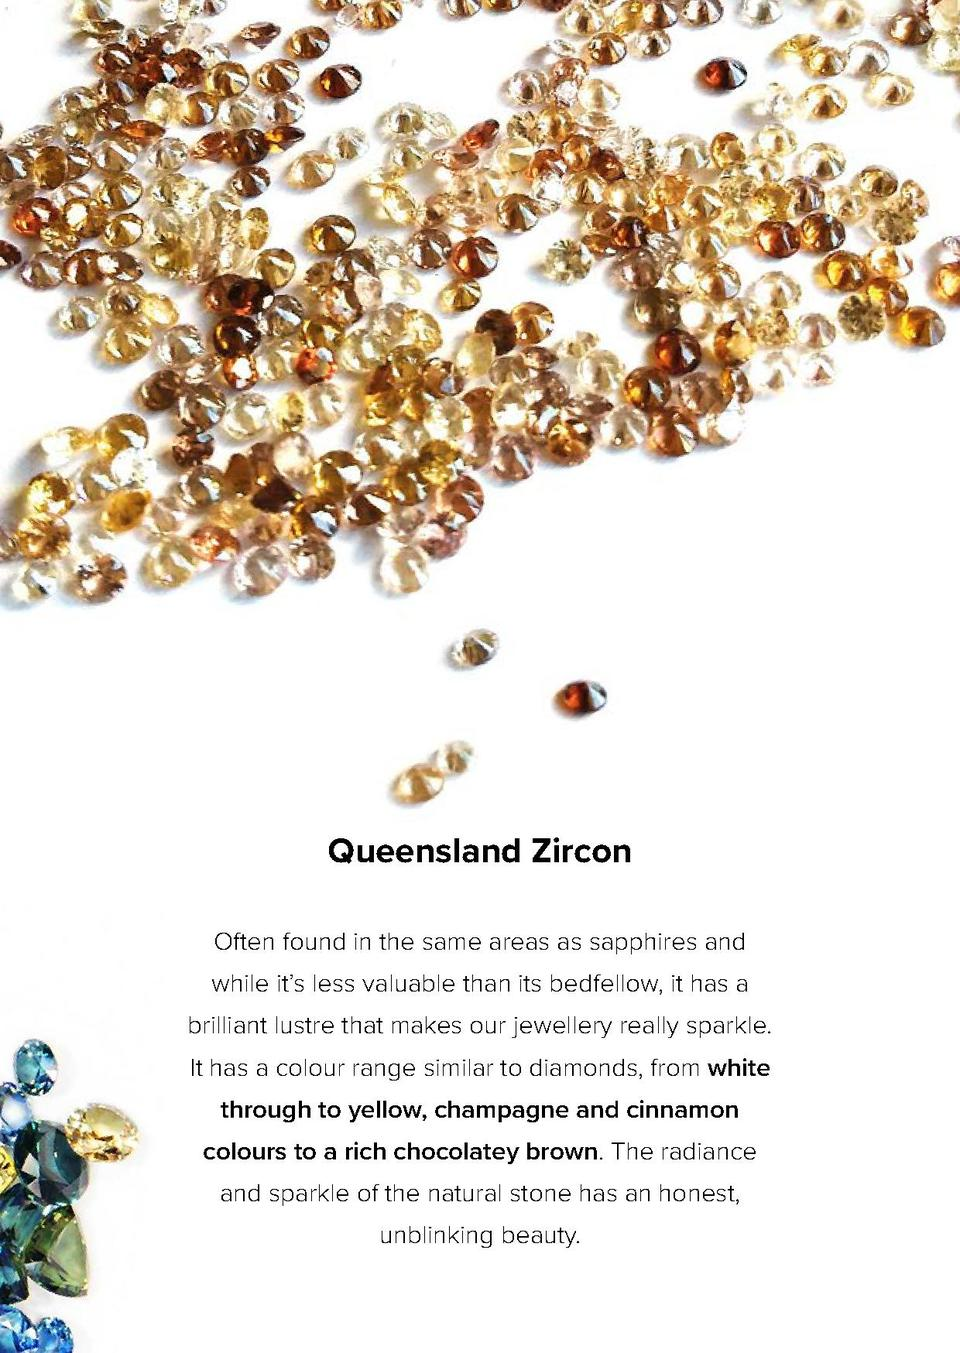 Queensland Zircon Often found in the same areas as sapphires and while it   s less valuable than its bedfellow, it has a b...